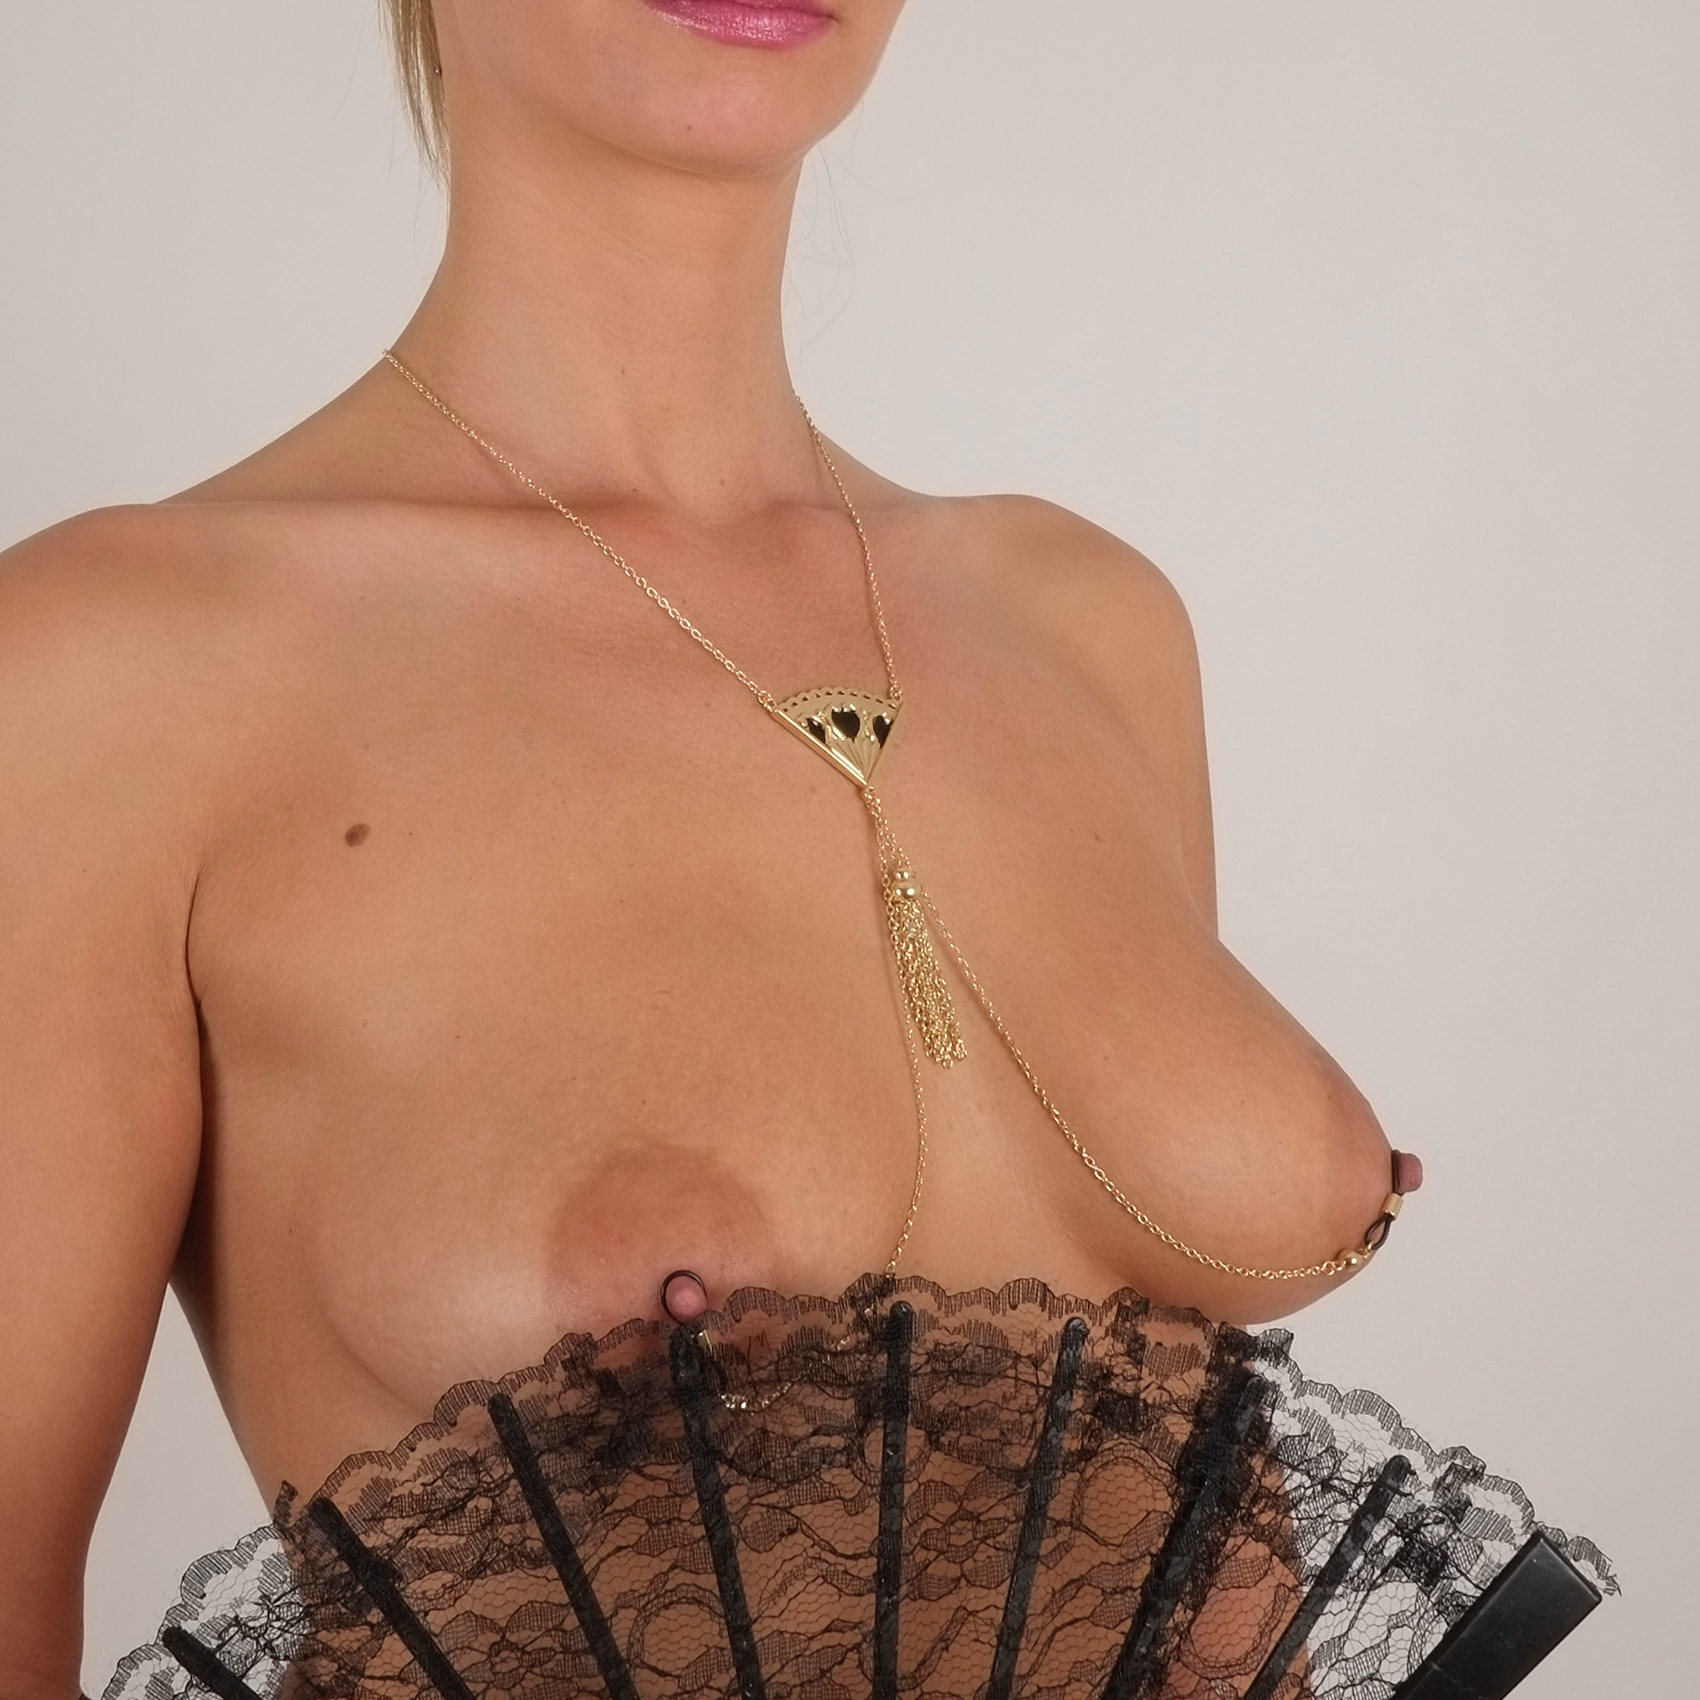 cos64 0 collier seins eventail or.jpg